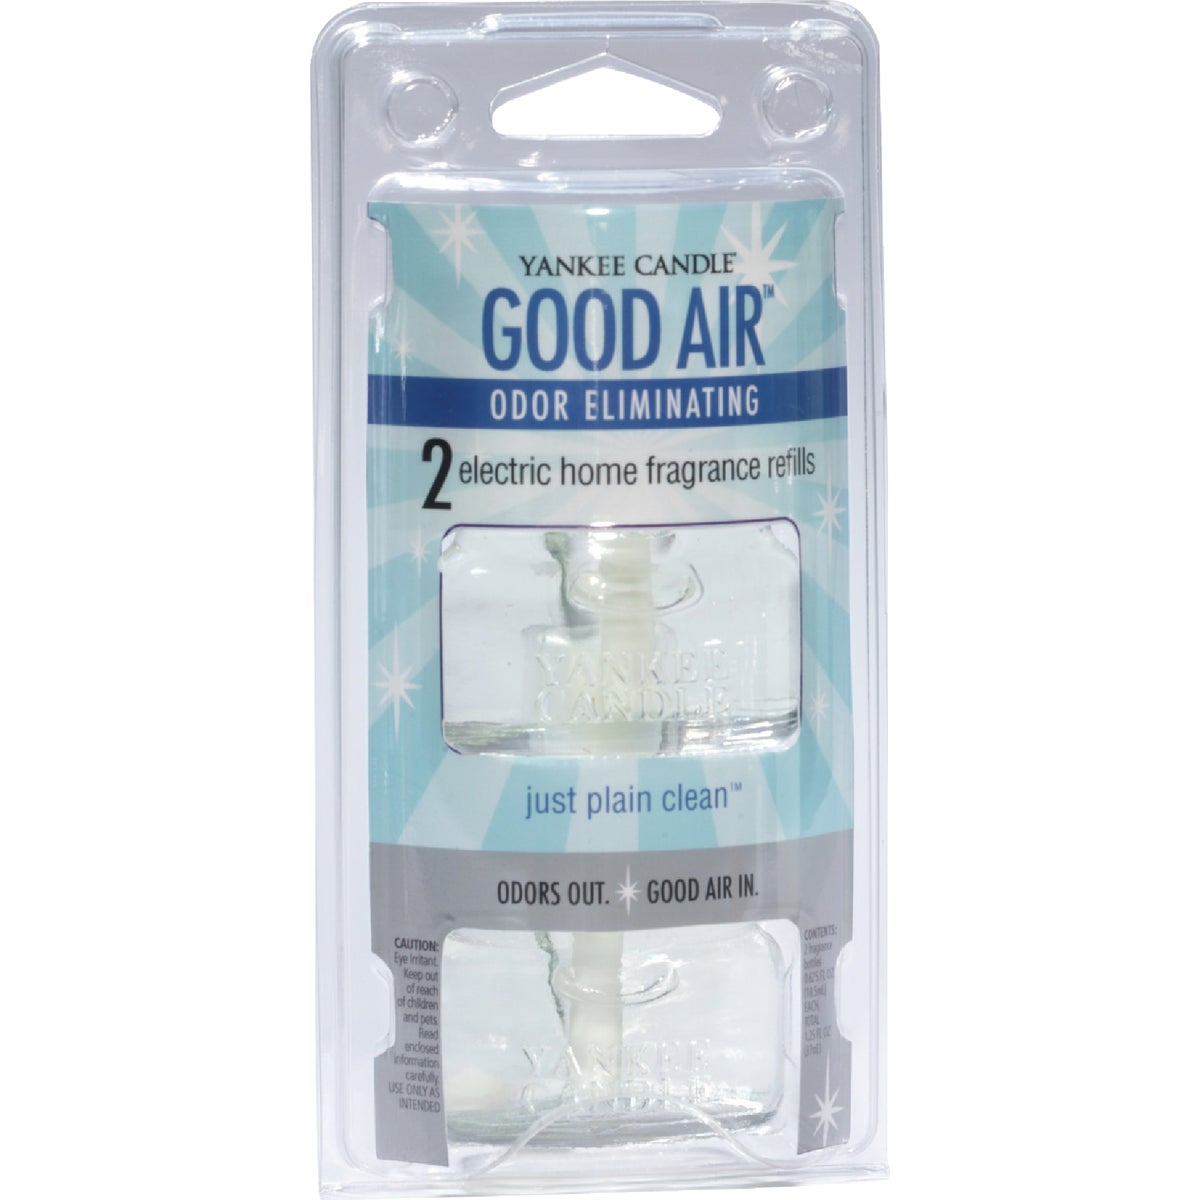 GOOD AIR ELECTRIC REFILL - 1155728 by Yankee Candle Co